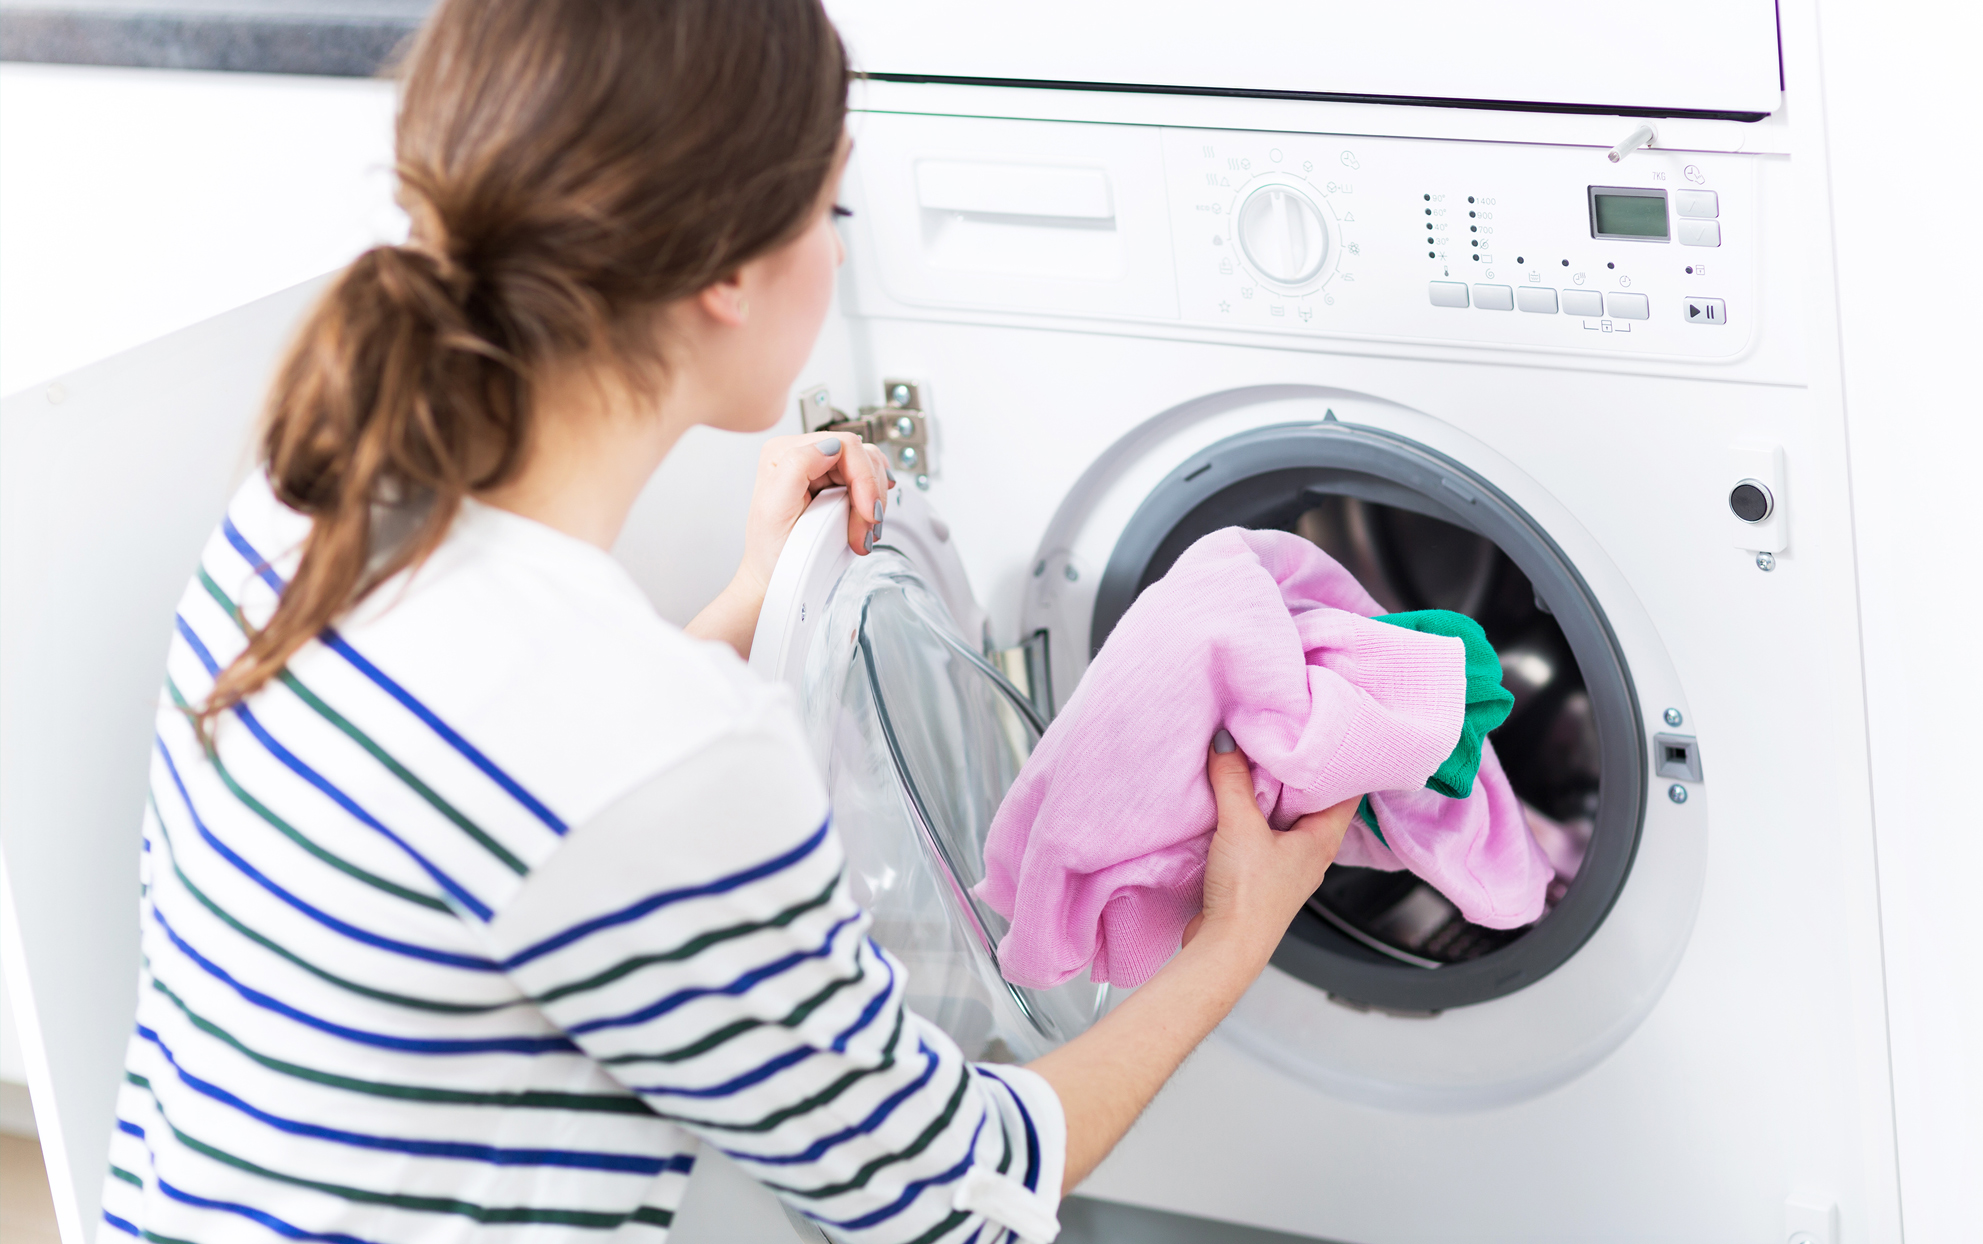 woman putting laundry into the washing machine